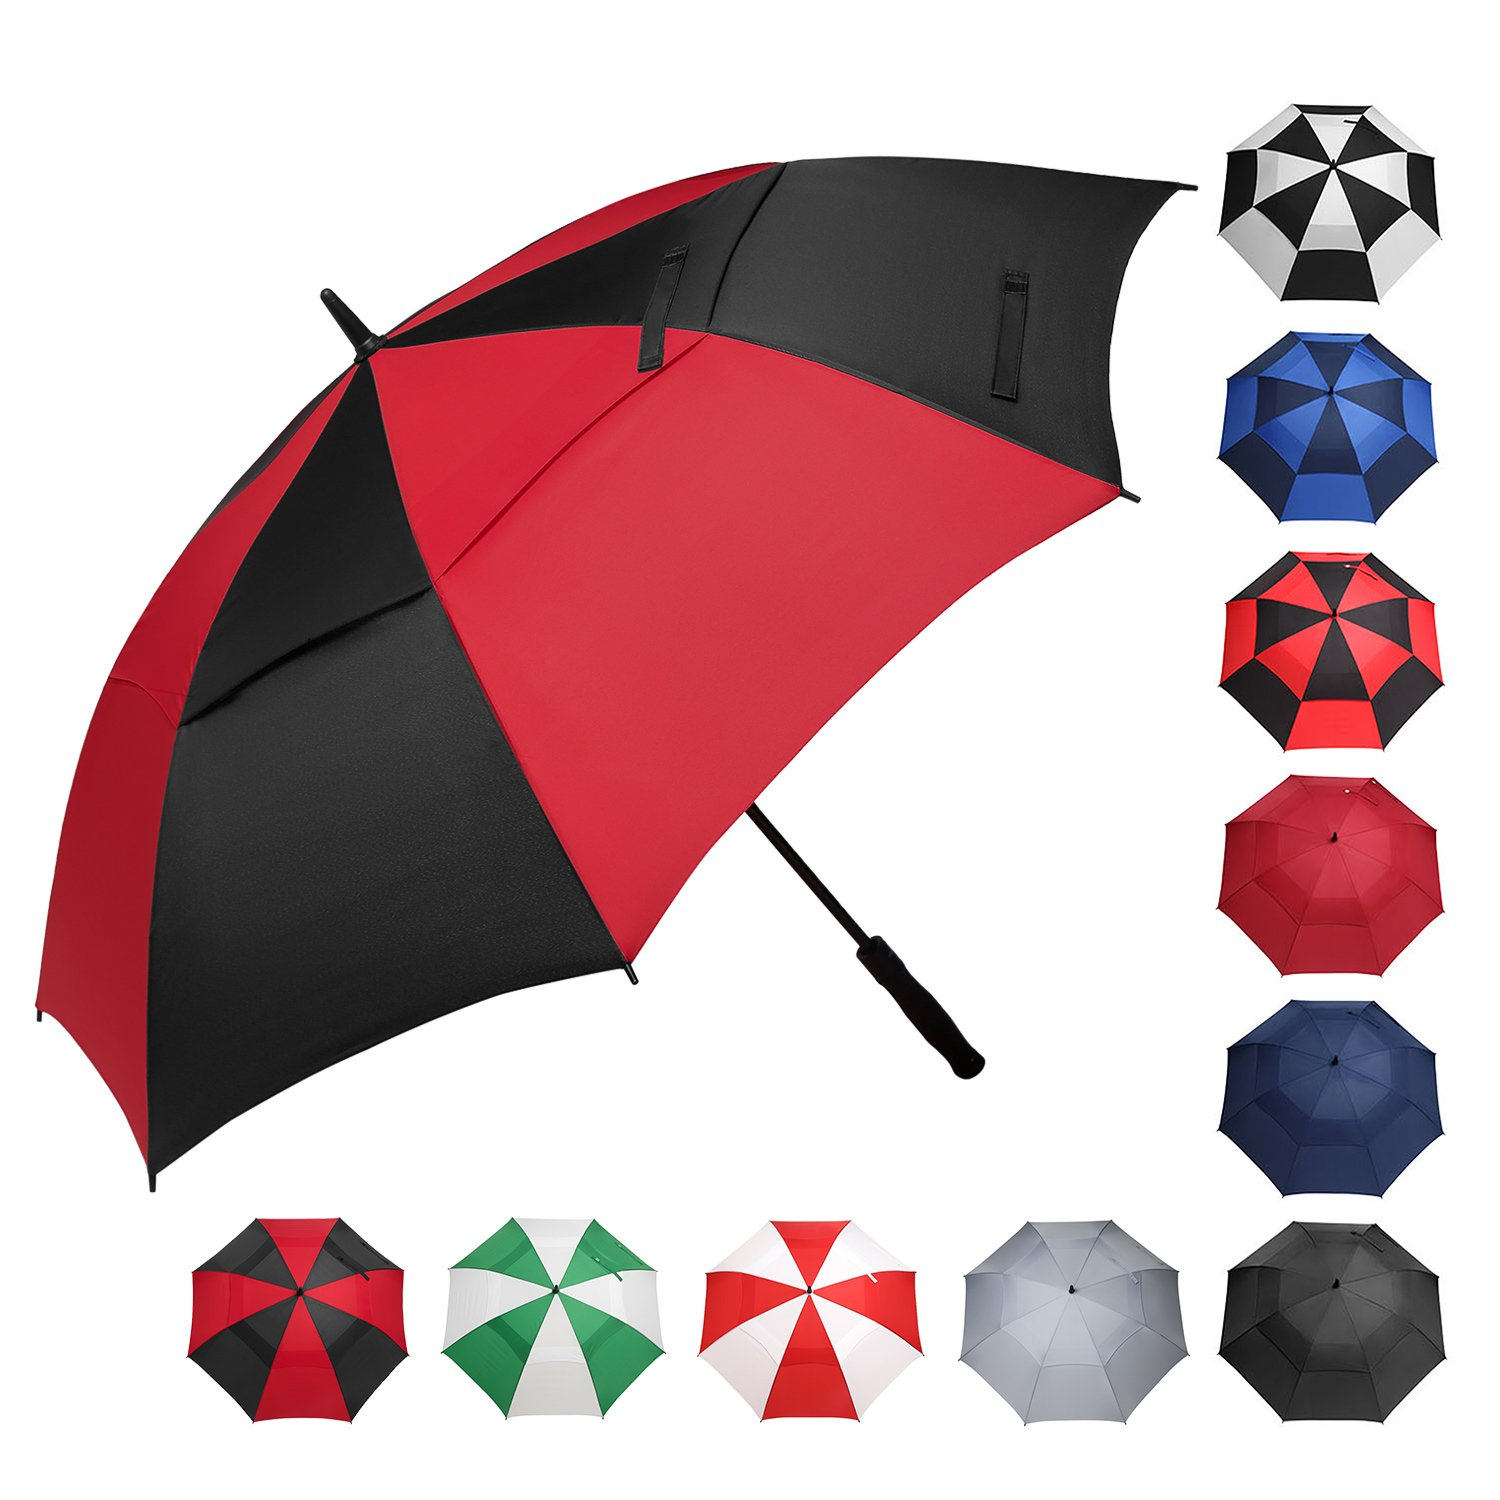 BAGAIL Golf Umbrella 68/62/58 Inch Large Oversize Double Canopy Vented Windproof Waterproof Automatic Open Stick Umbrellas for Men and Women (Red Black, 62 inch) by BAGAIL